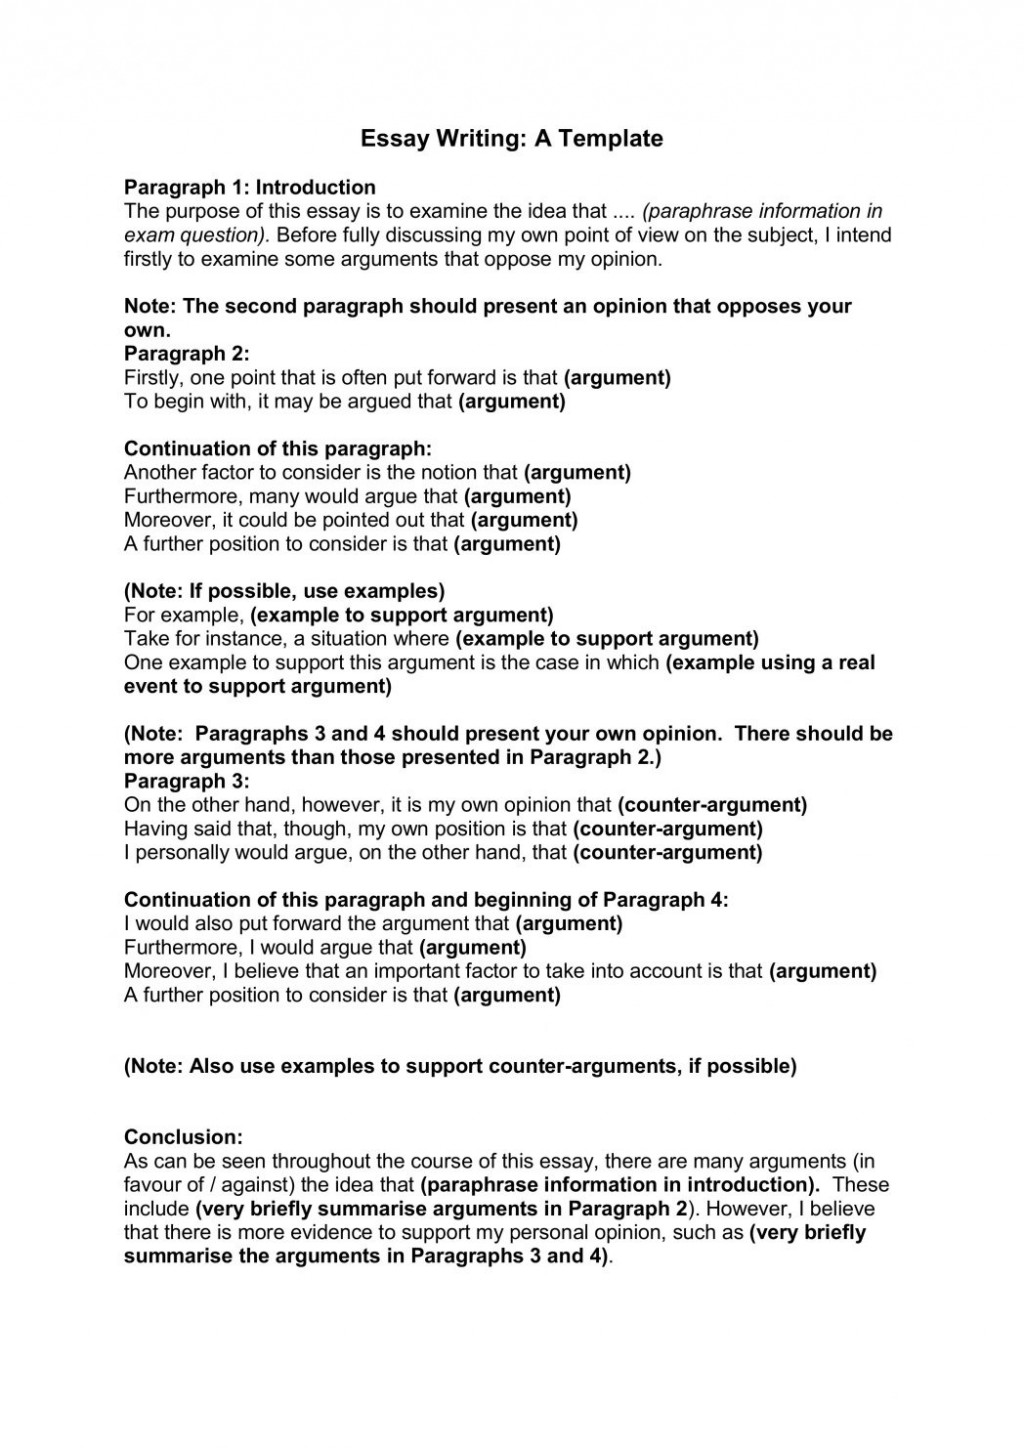 010 Essay Example Start How To Creative Writing Ways College With Quote Template For P Hook About Yourself Prompt Scholarship Application Your Background Examples Failure Wonderful An A Argumentative Write Format Mla Large